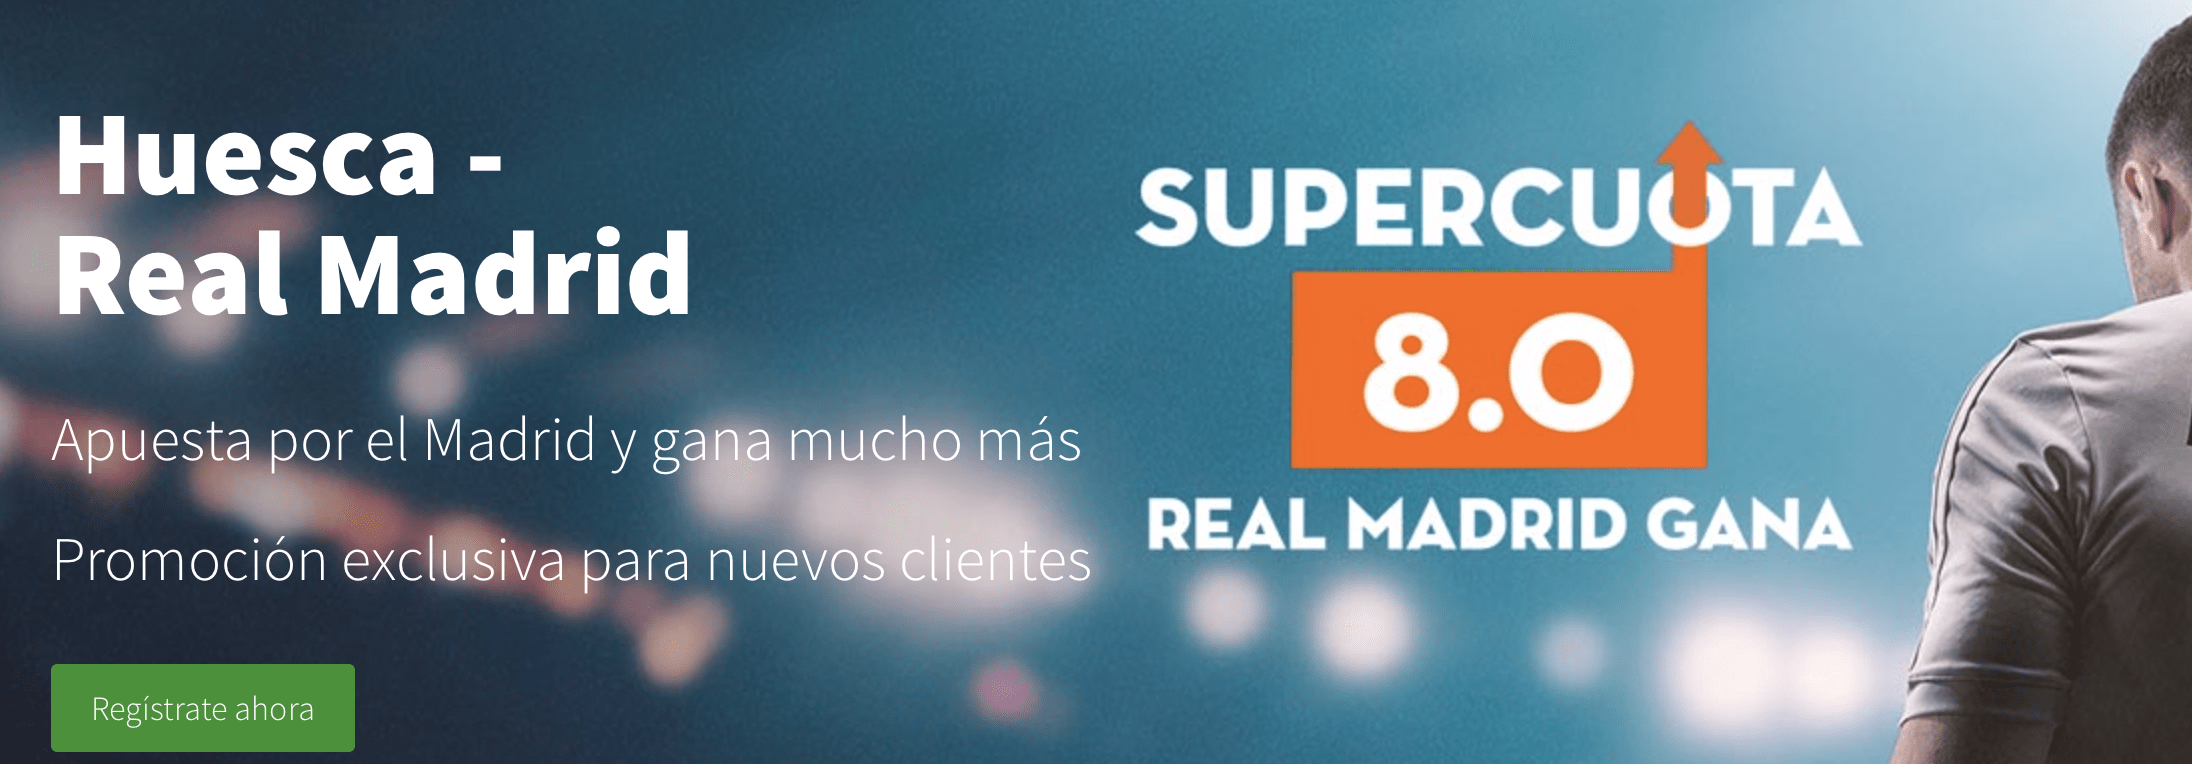 Supercuotas betsson Huesca - Real Madrid